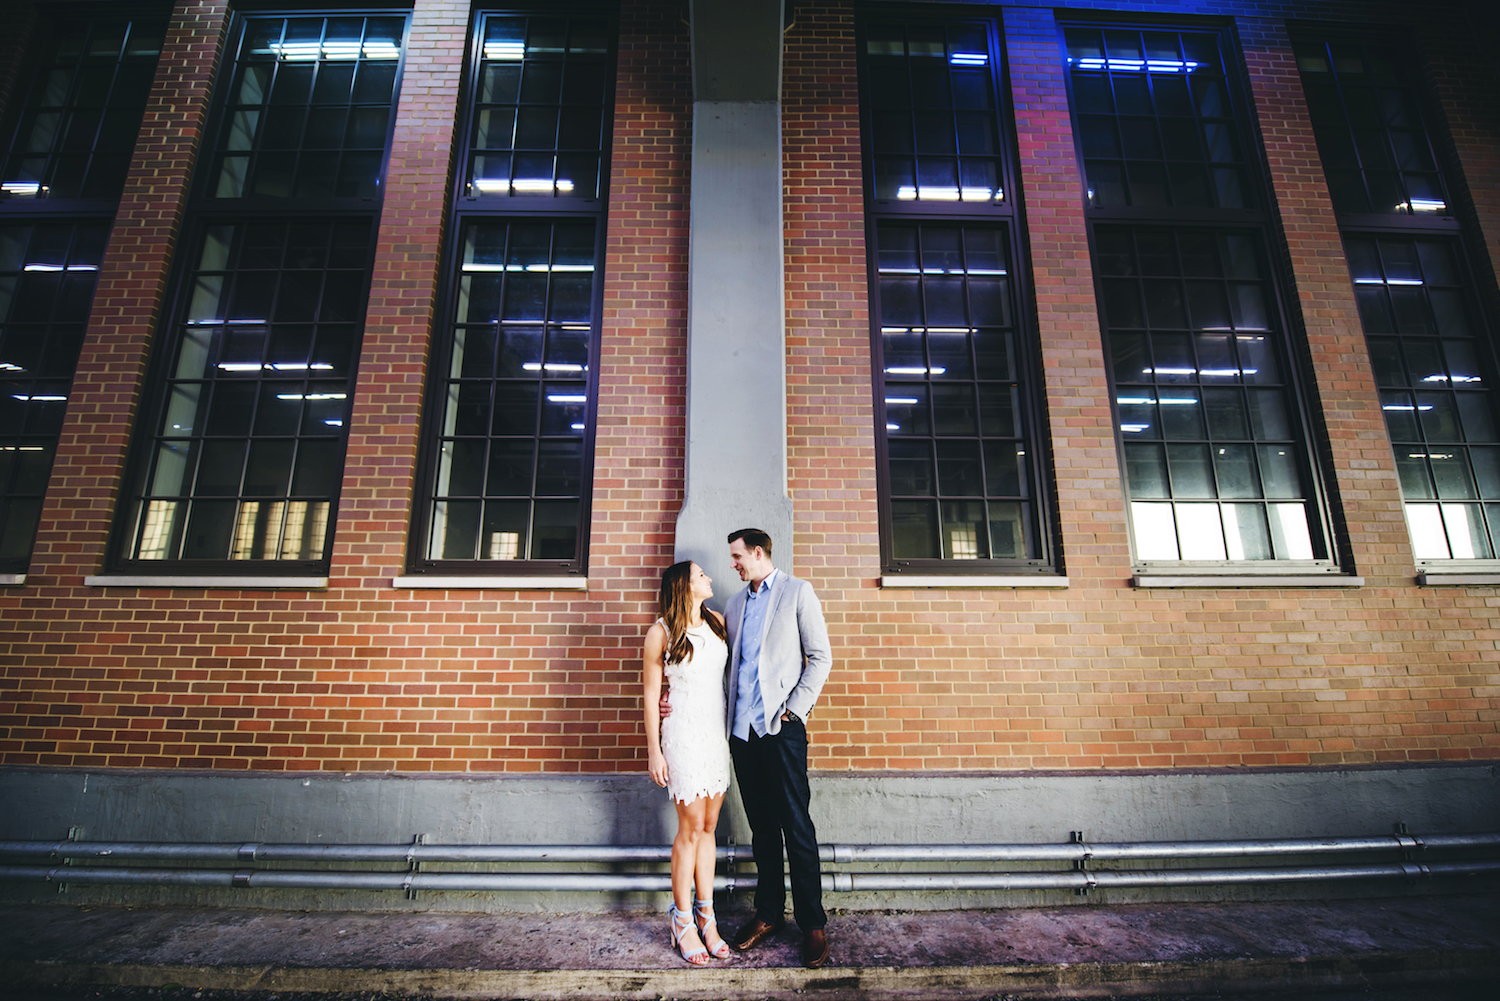 kayla&mike-standing-by-brick-wall-nyc-engagement-photography